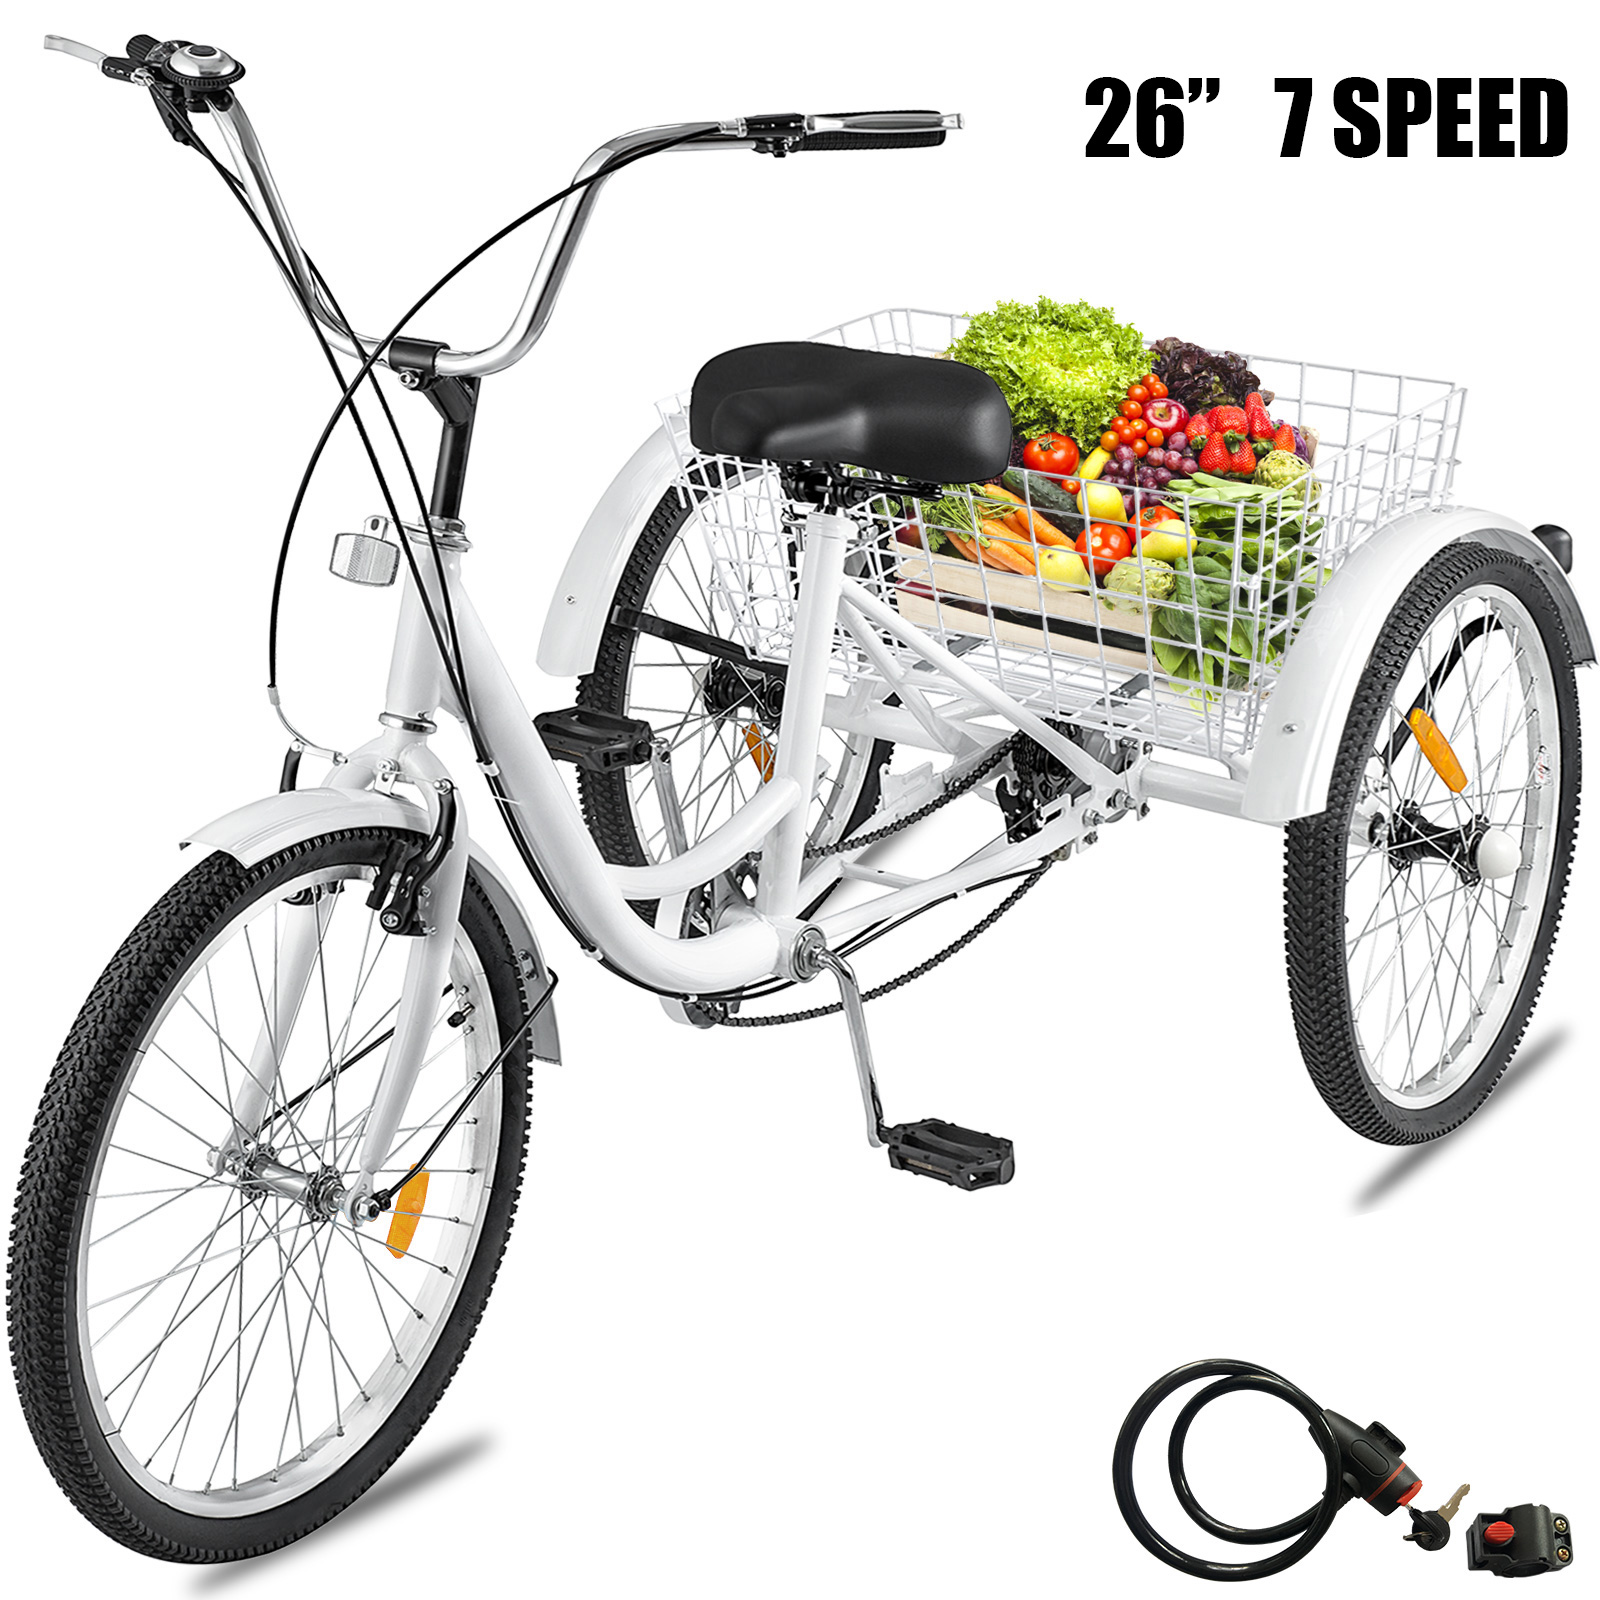 "Adult Tricycle 26"" Wheel 7 Speed 3 Wheels White Bicycle Trik"